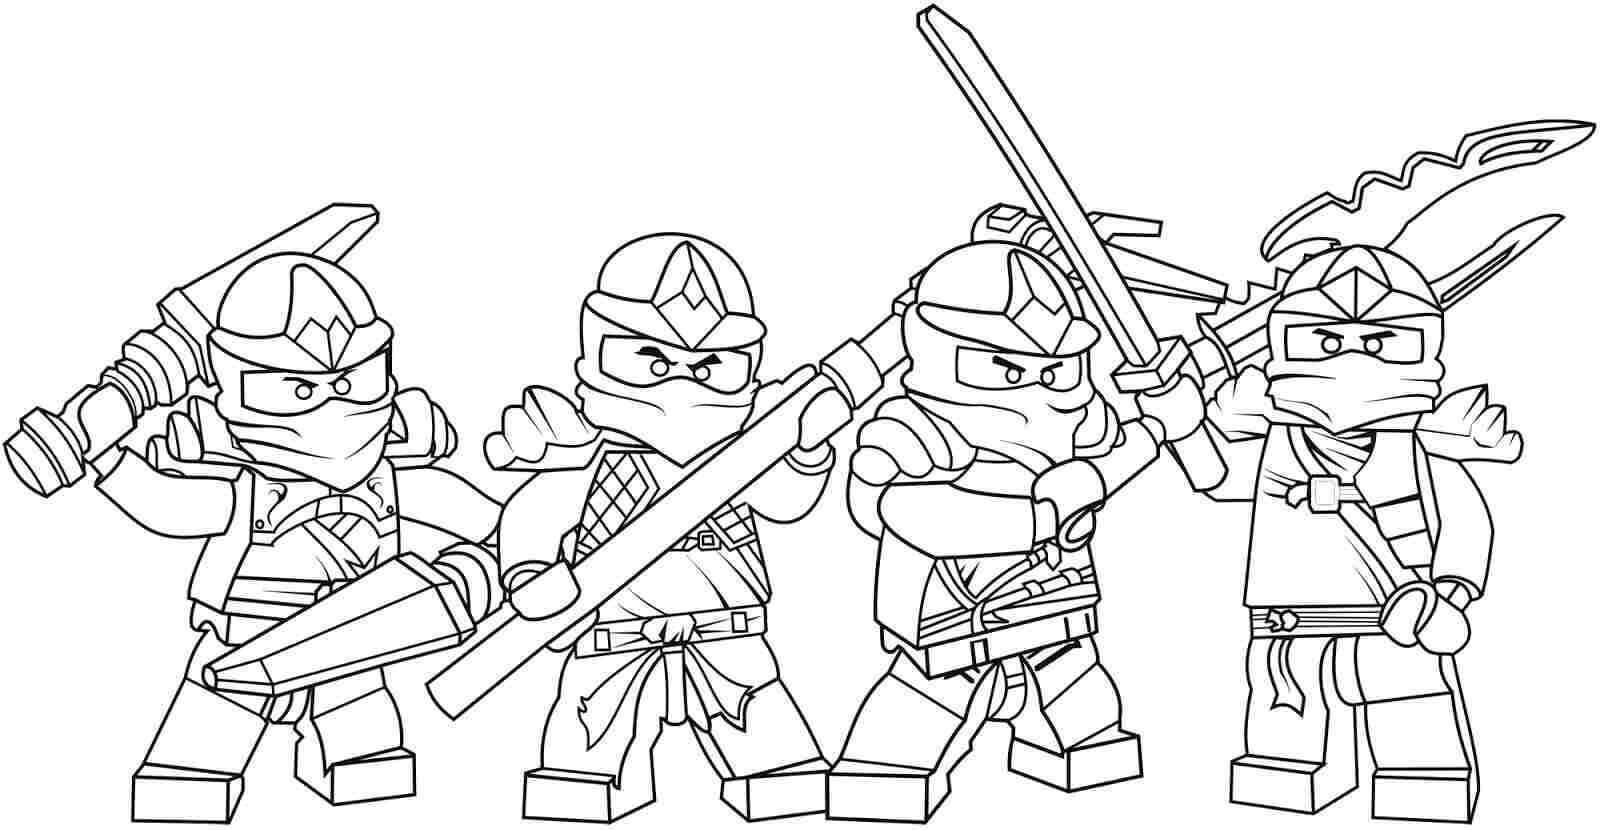 30 Free Printable Lego Ninjago Coloring Pages Ninjago Coloring Pages Lego Coloring Pages Lego Coloring